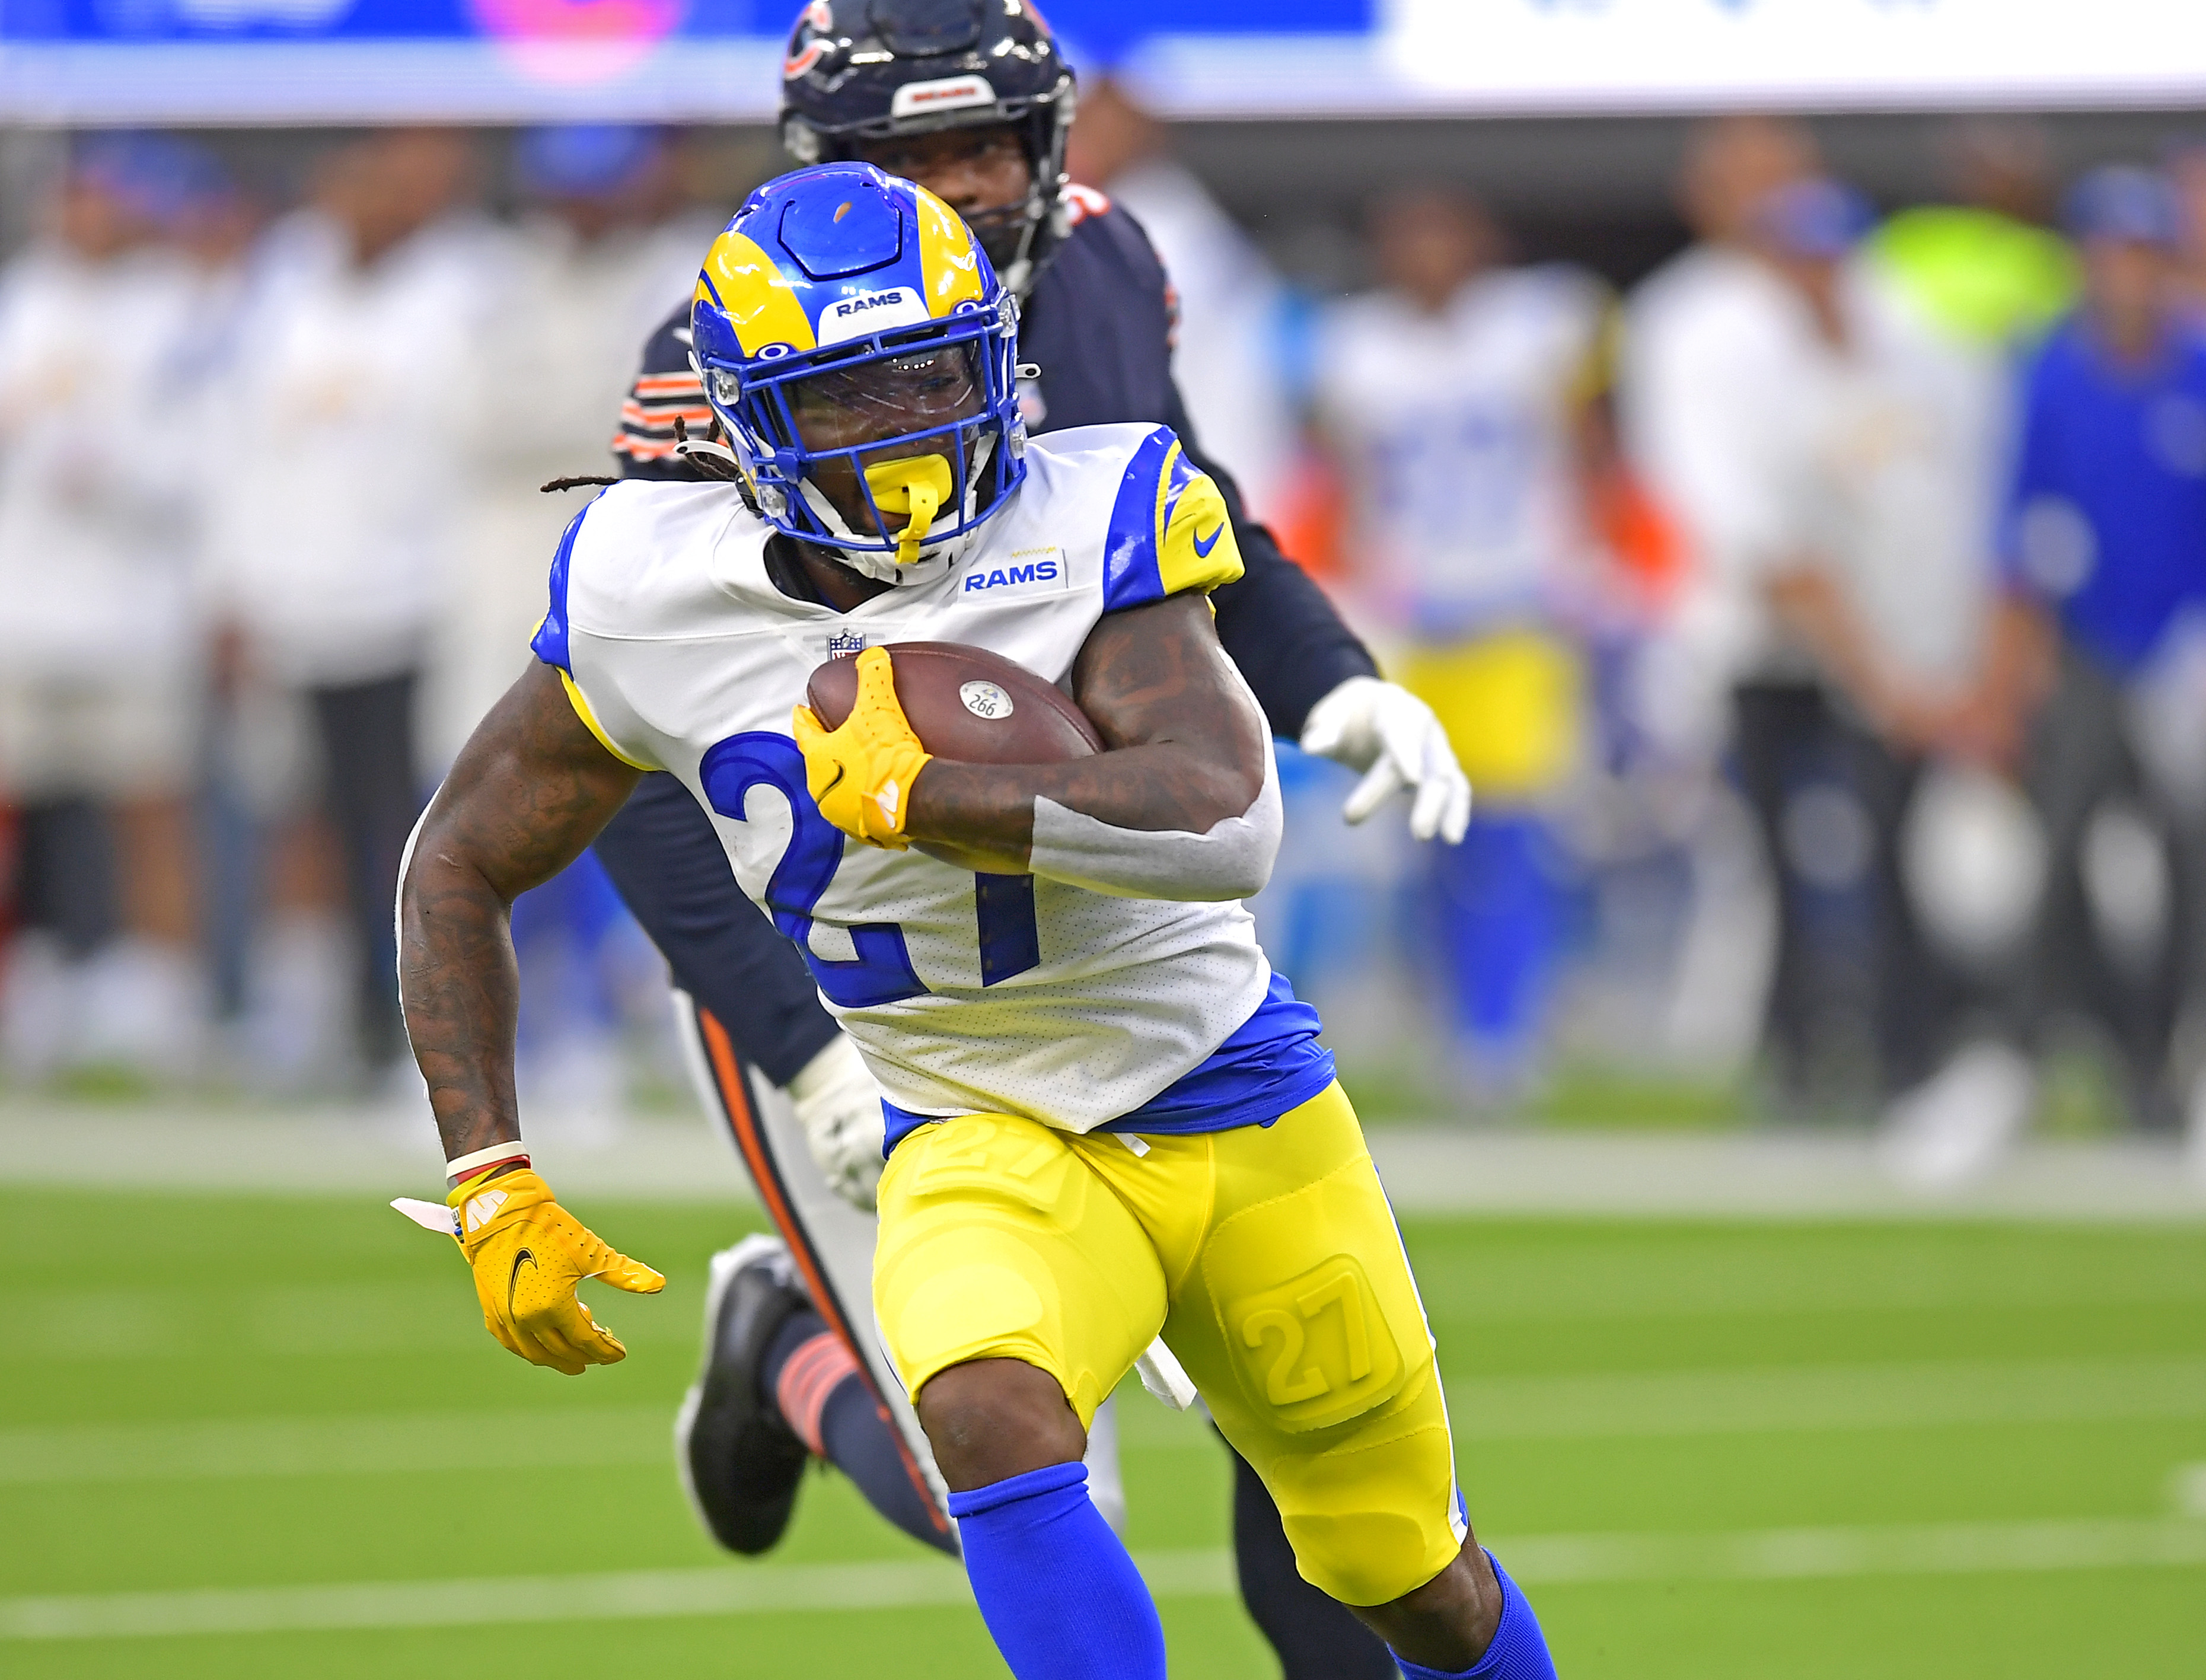 Los Angeles Rams running back Darrell Henderson breaks away from Chicago Bears outside linebacker Alec Ogletree and runs for a first down in the first half of the game at SoFi Stadium.